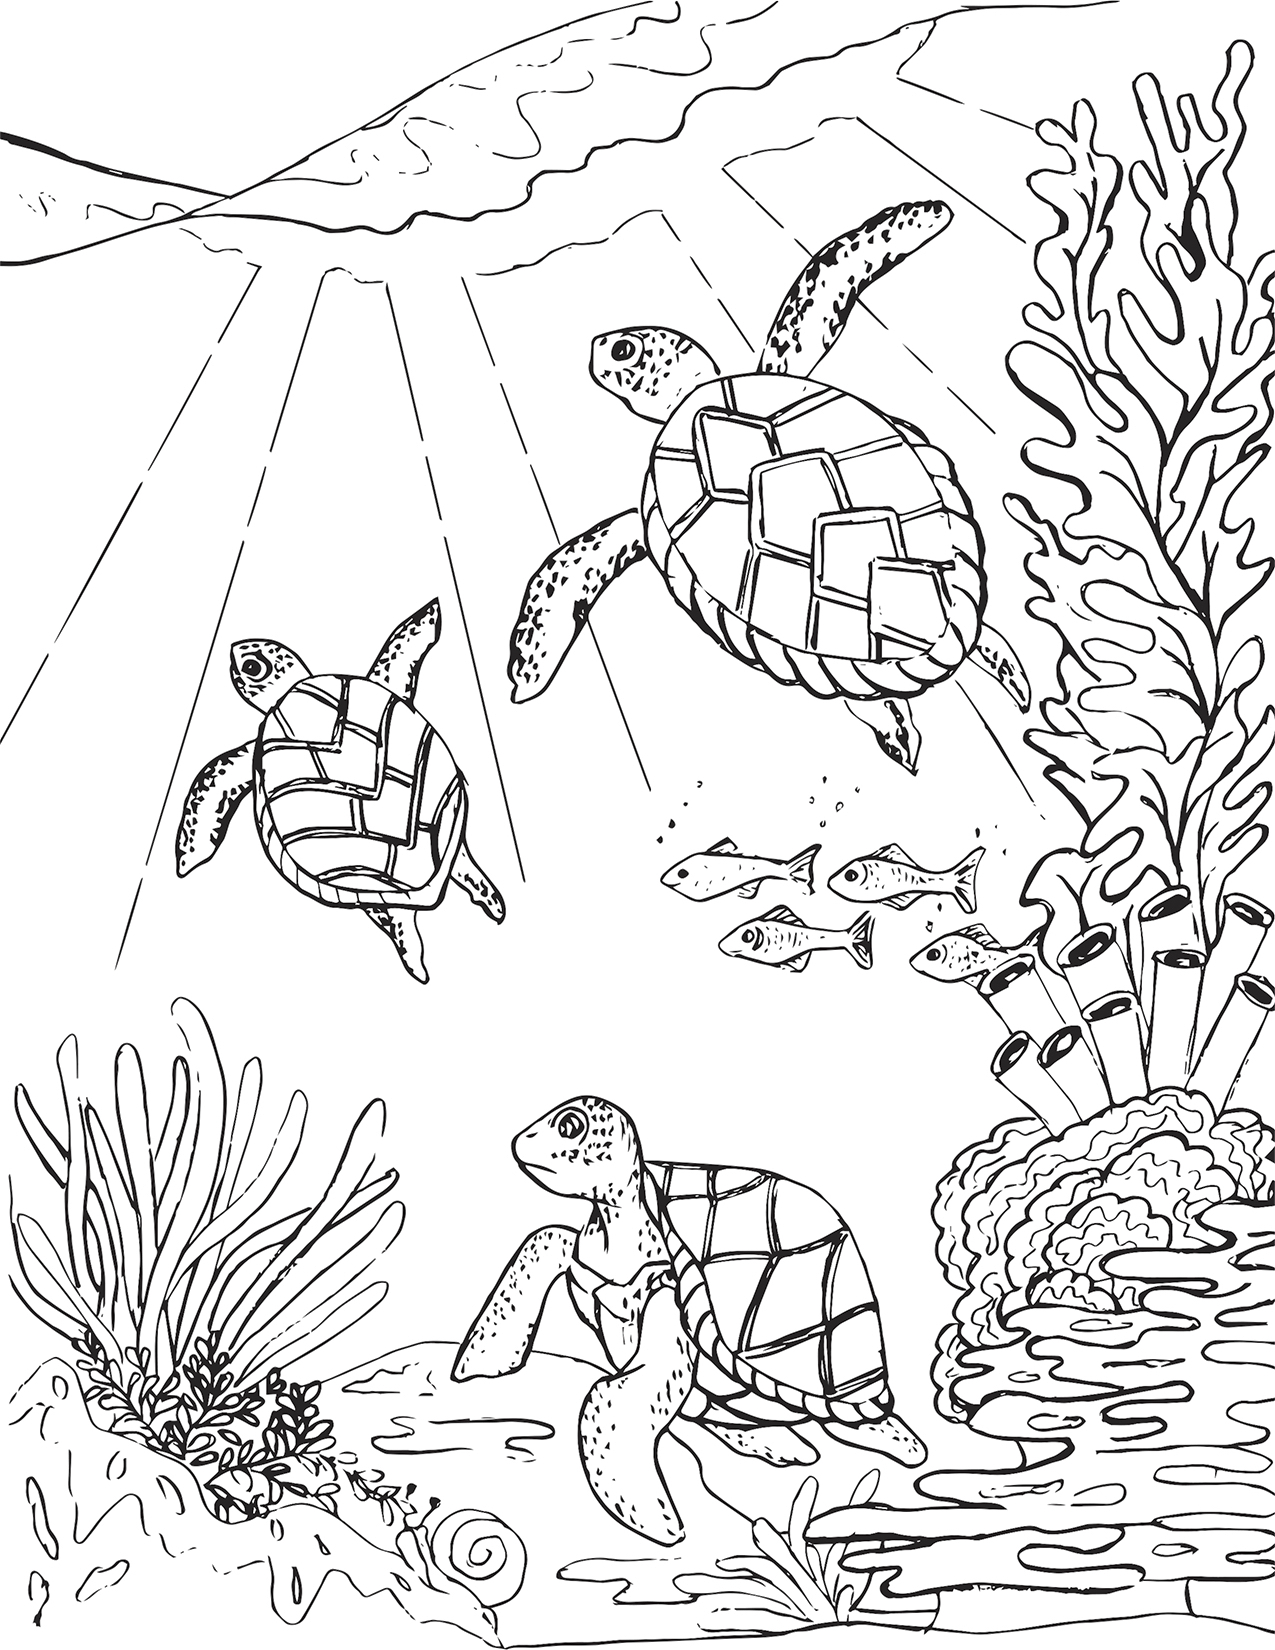 - Three Sea Turtles Coloring Page – Mermaid Coloring Pages